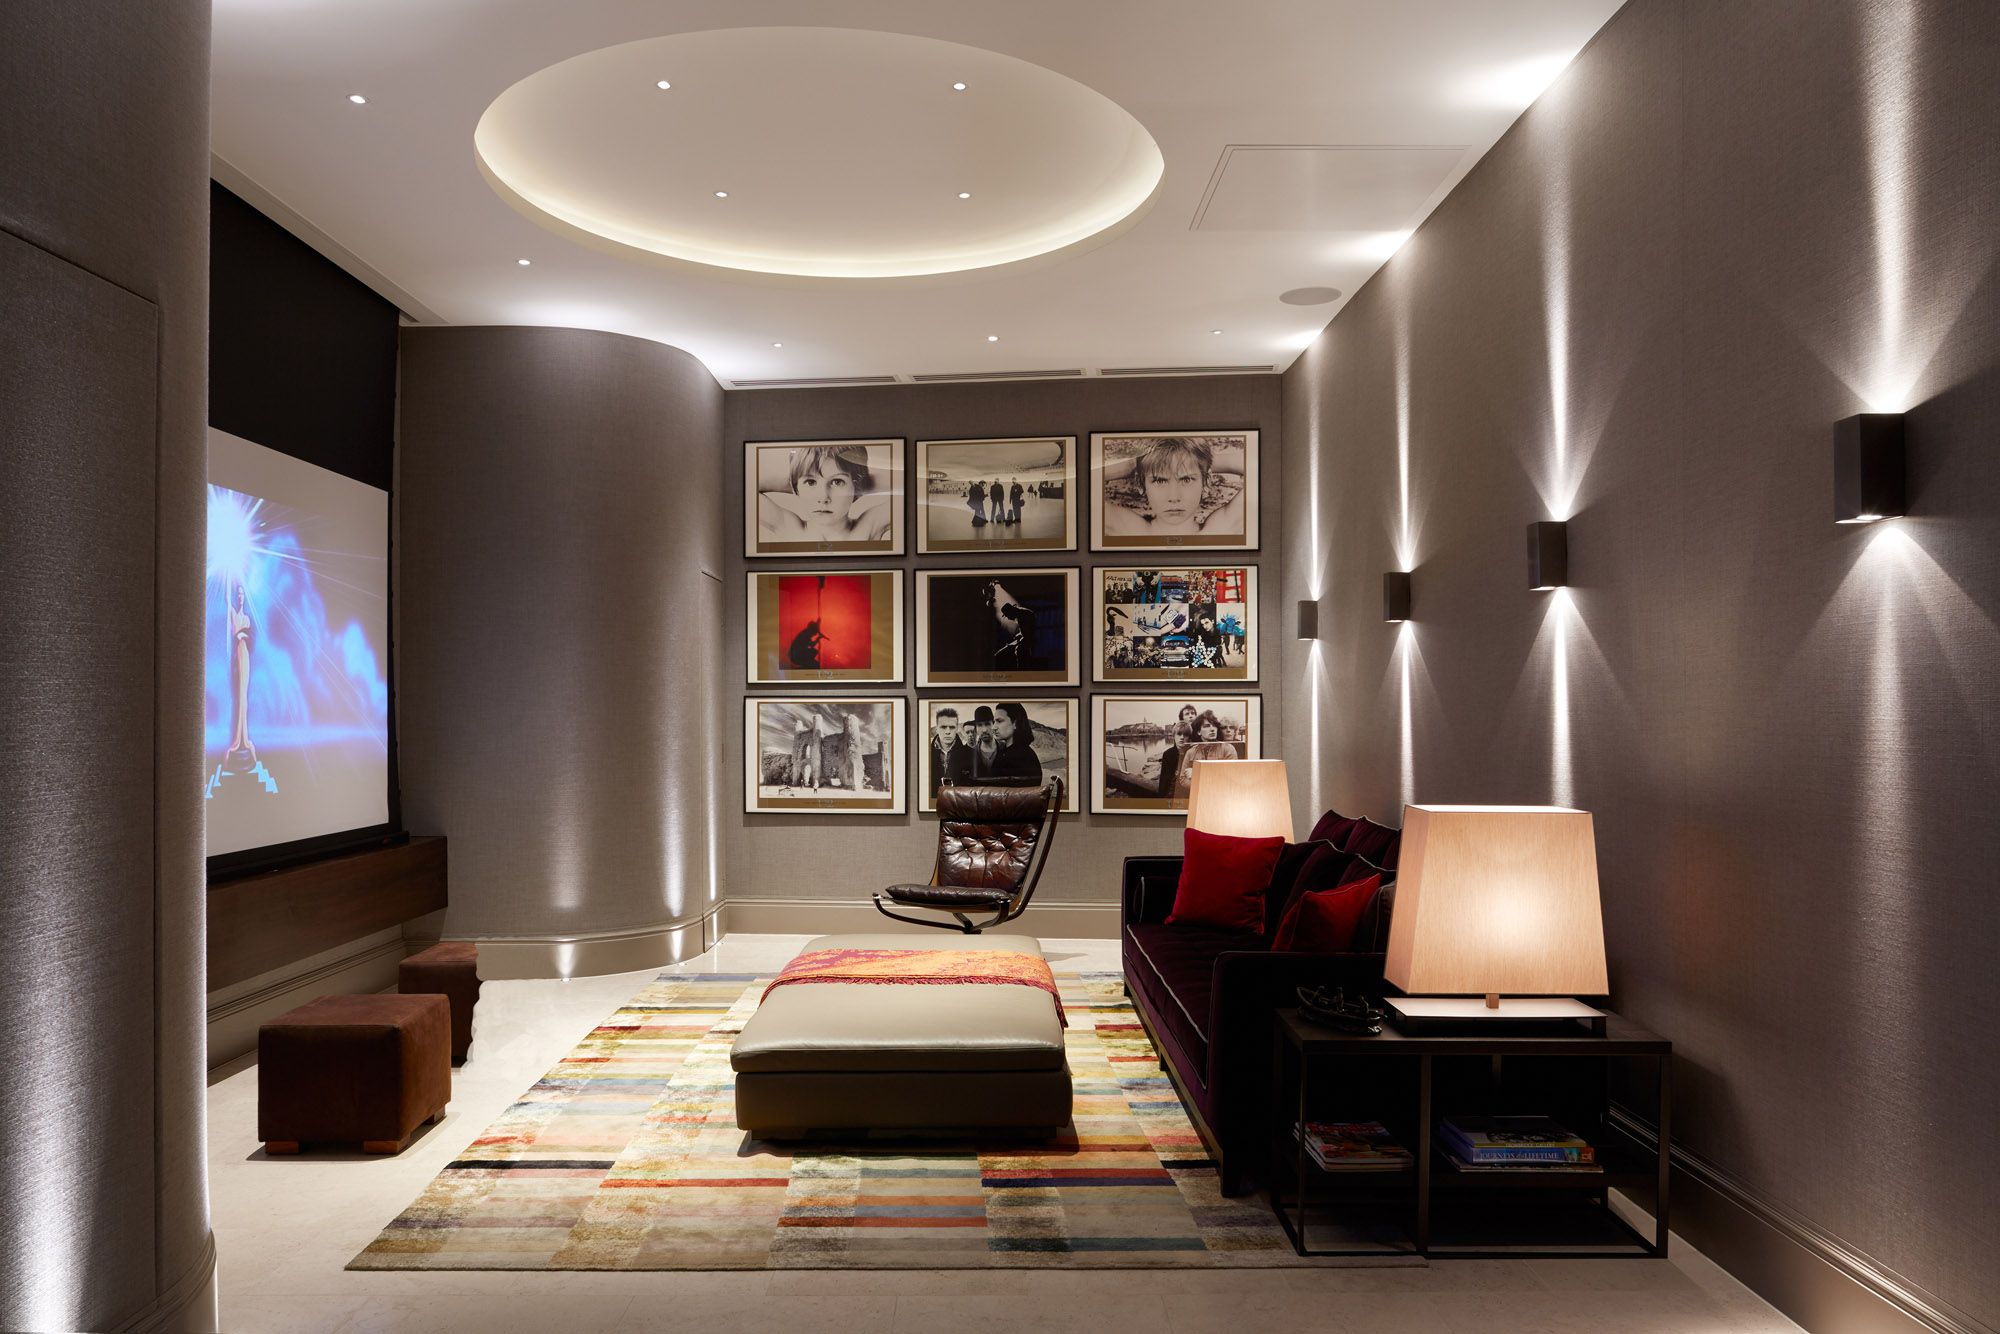 game room lighting ideas. John Cullen Specialise In Creating Superb Lighting Design For TV, Cinema And Games Rooms With Excellent Light Fittings To Create The Right Environment. Game Room Ideas ,